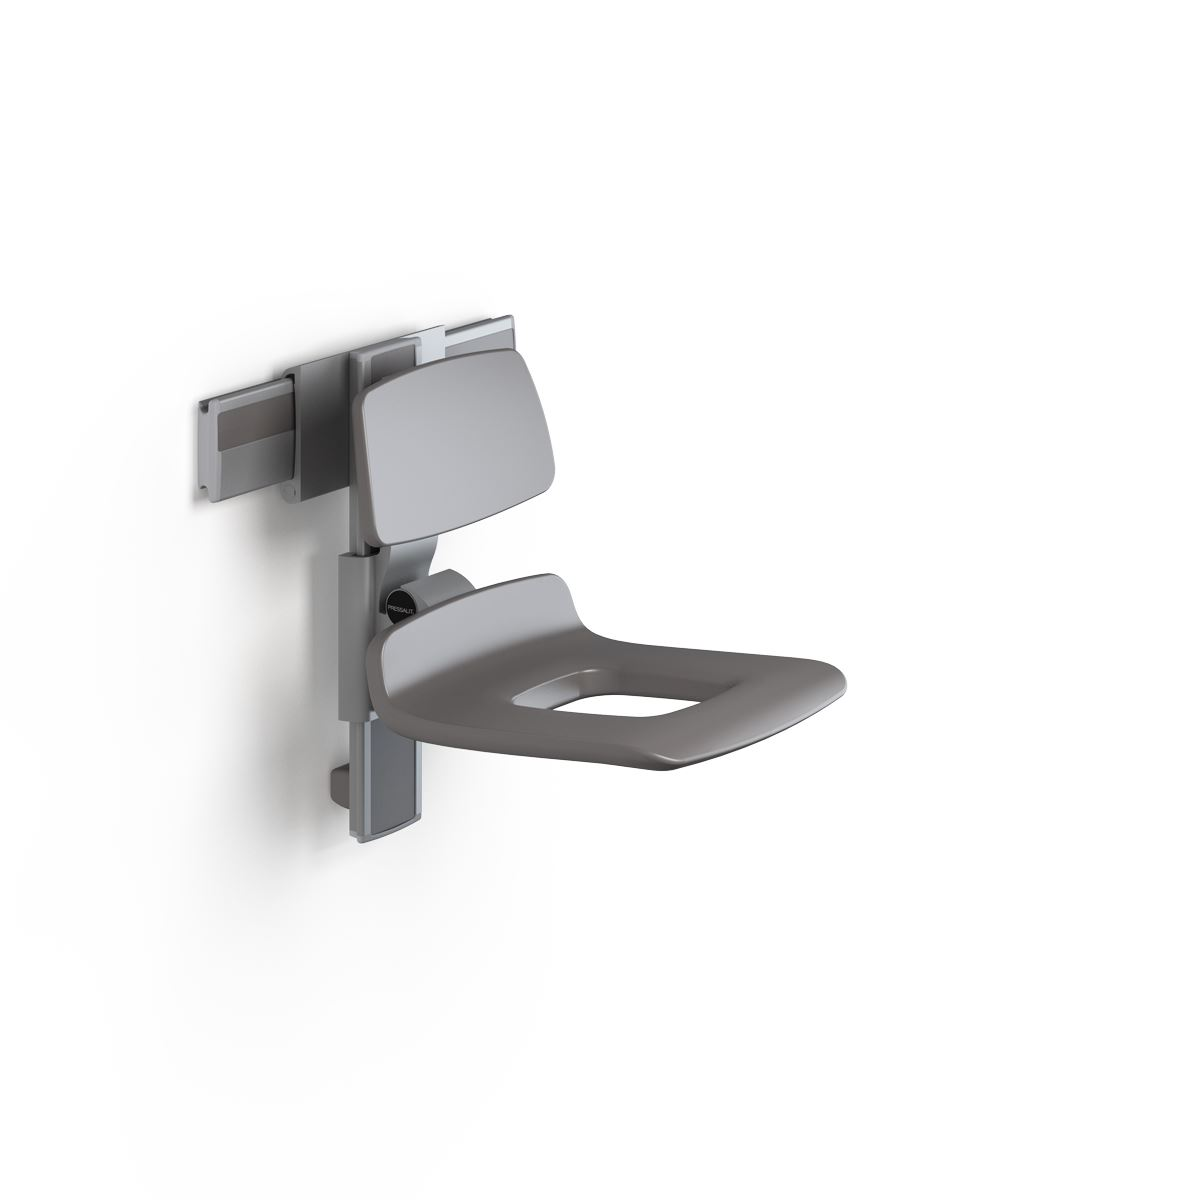 PLUS shower seat 450 with aperture, manually height and sideways adjustable